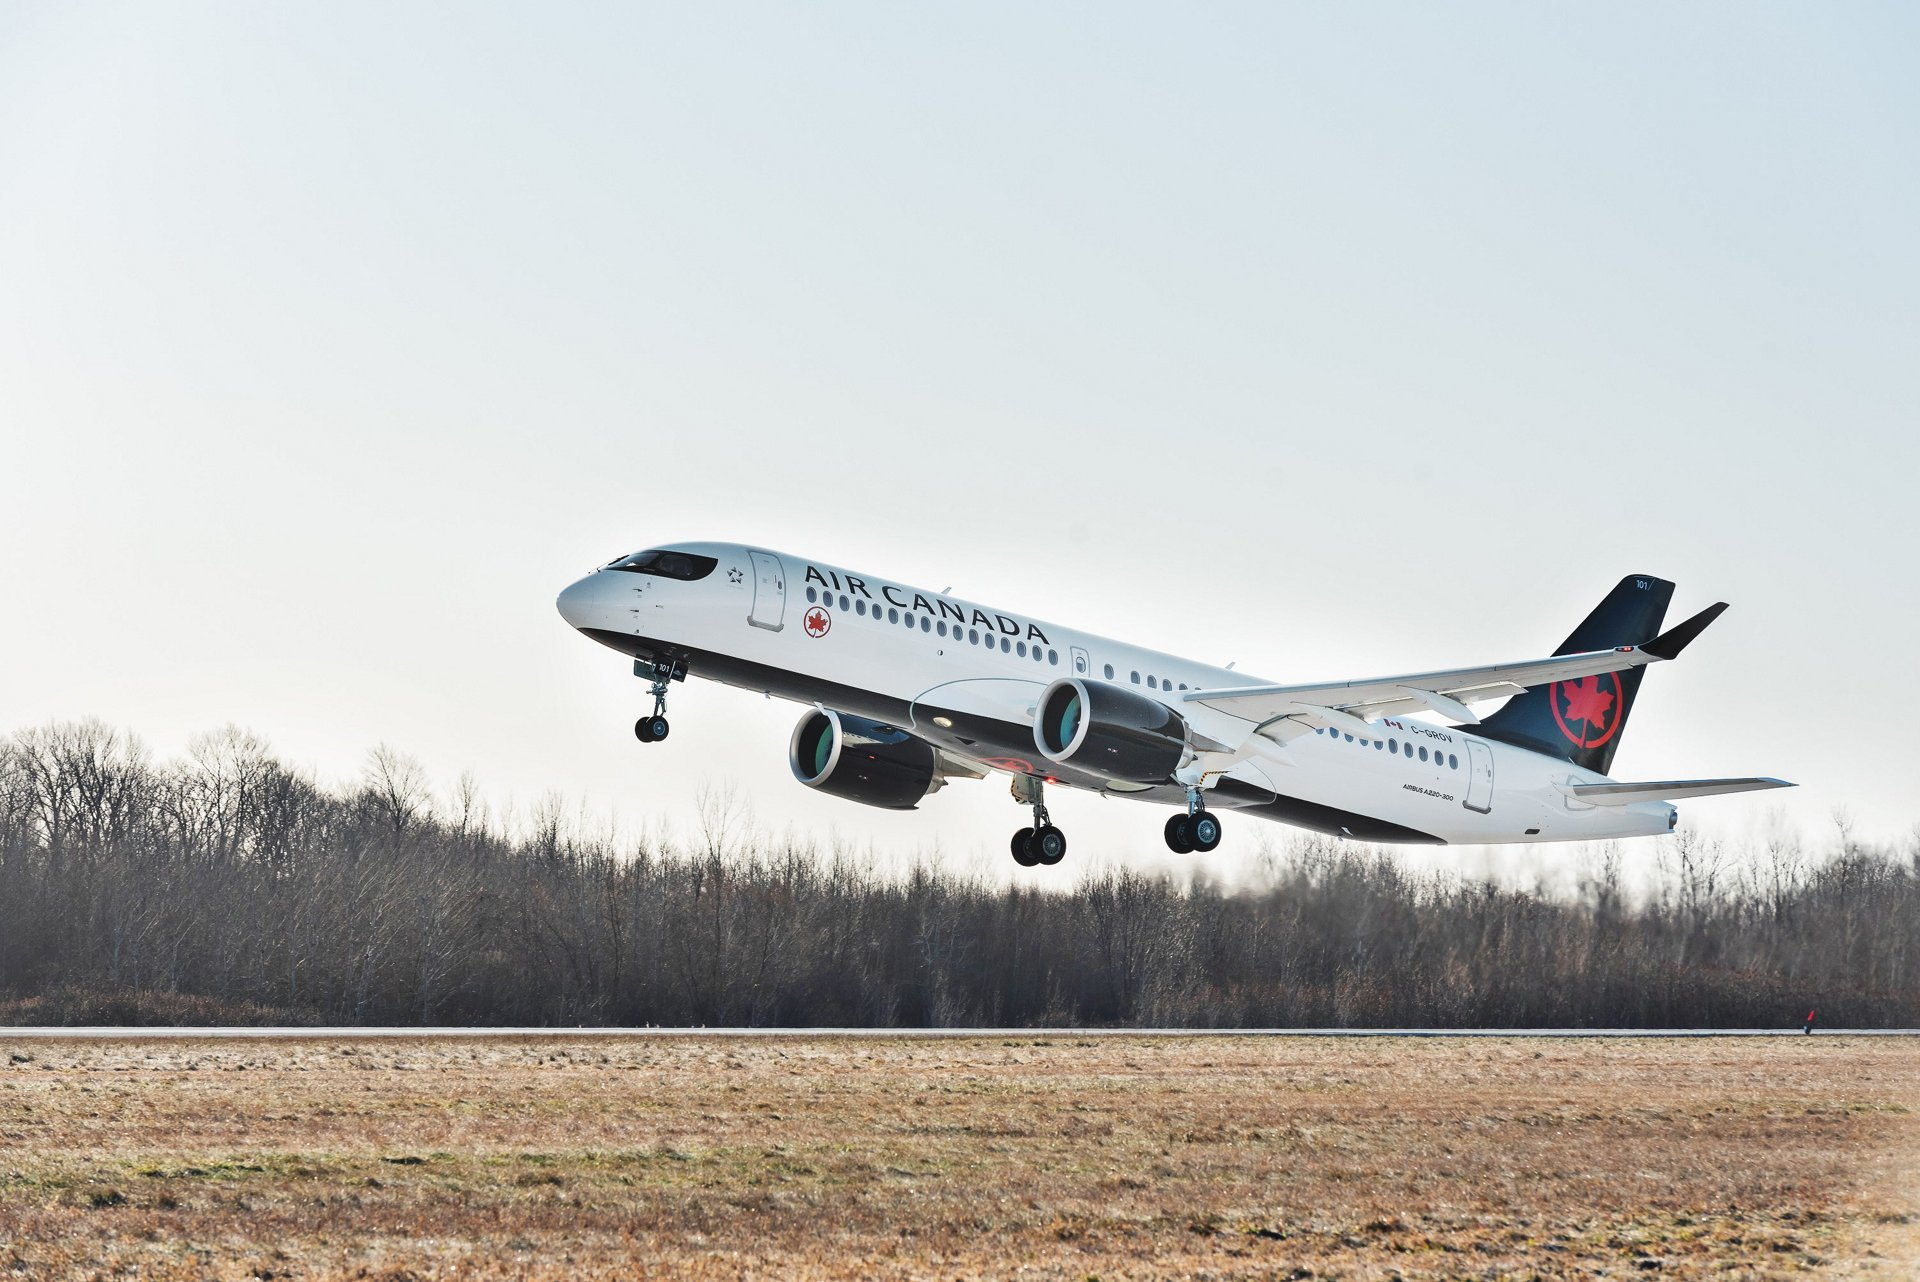 Air Canada鈥檚 first A220-300 takes to the skies